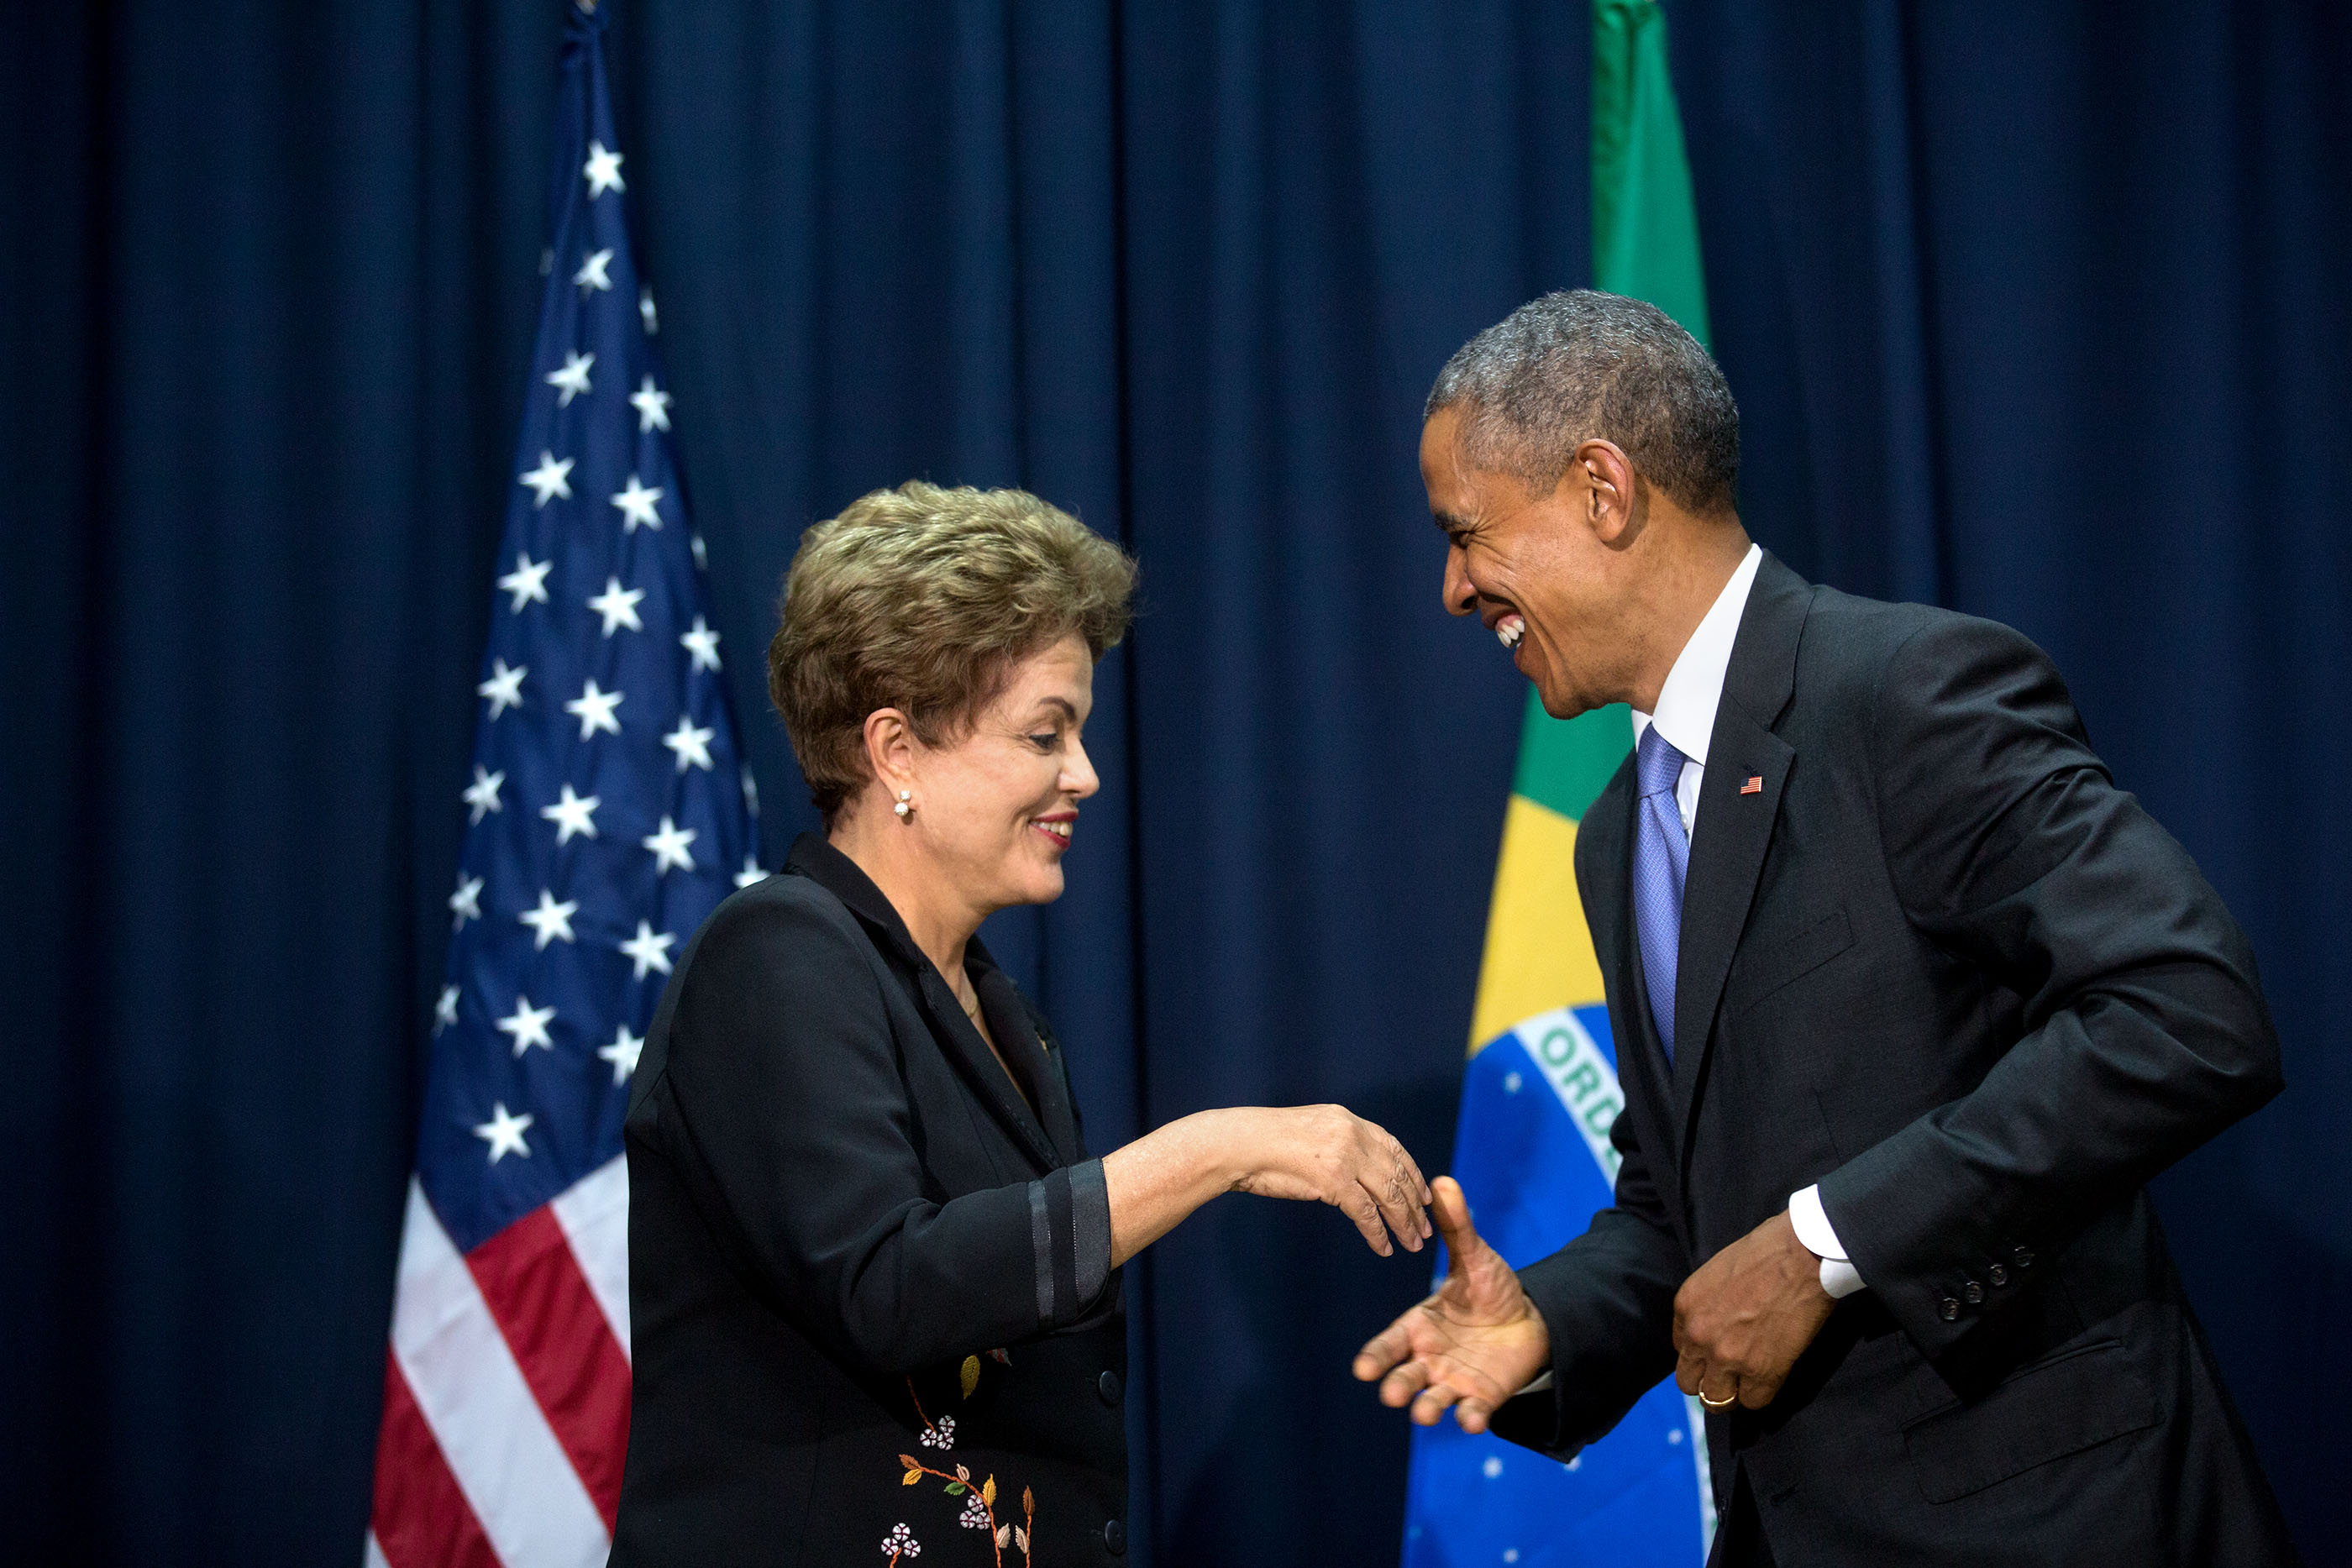 President Obama shakes hands with President Dilma Rousseff of Brazil at the start of their bilateral meeting. (Official White House Photo by Amanda Lucidon)